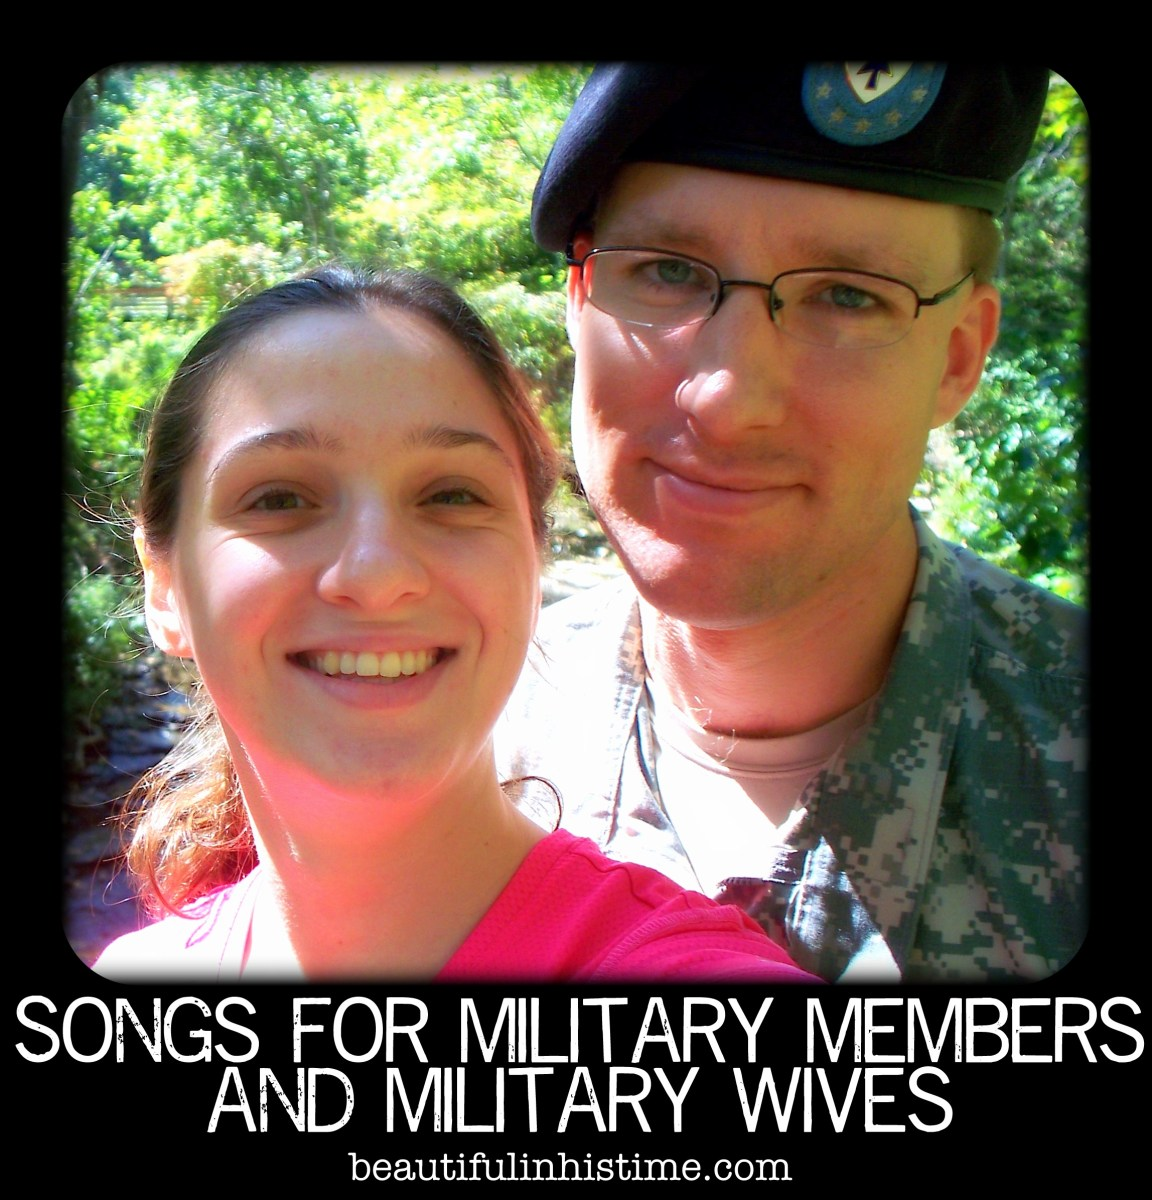 Songs for Military Members and Military Wives